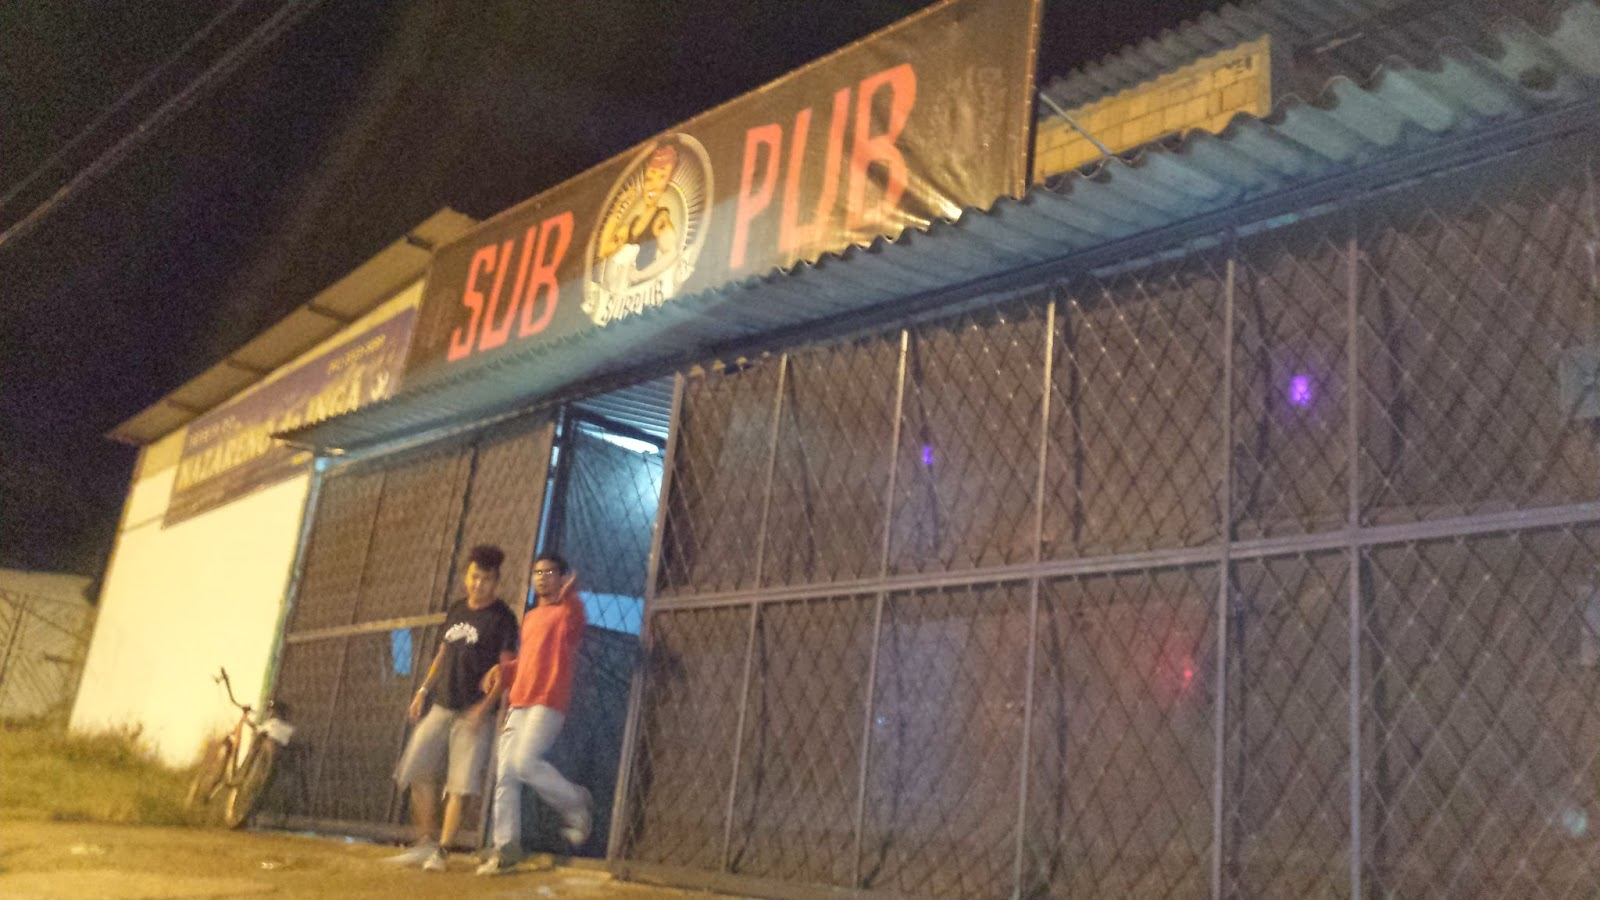 The Sub Pub Venue